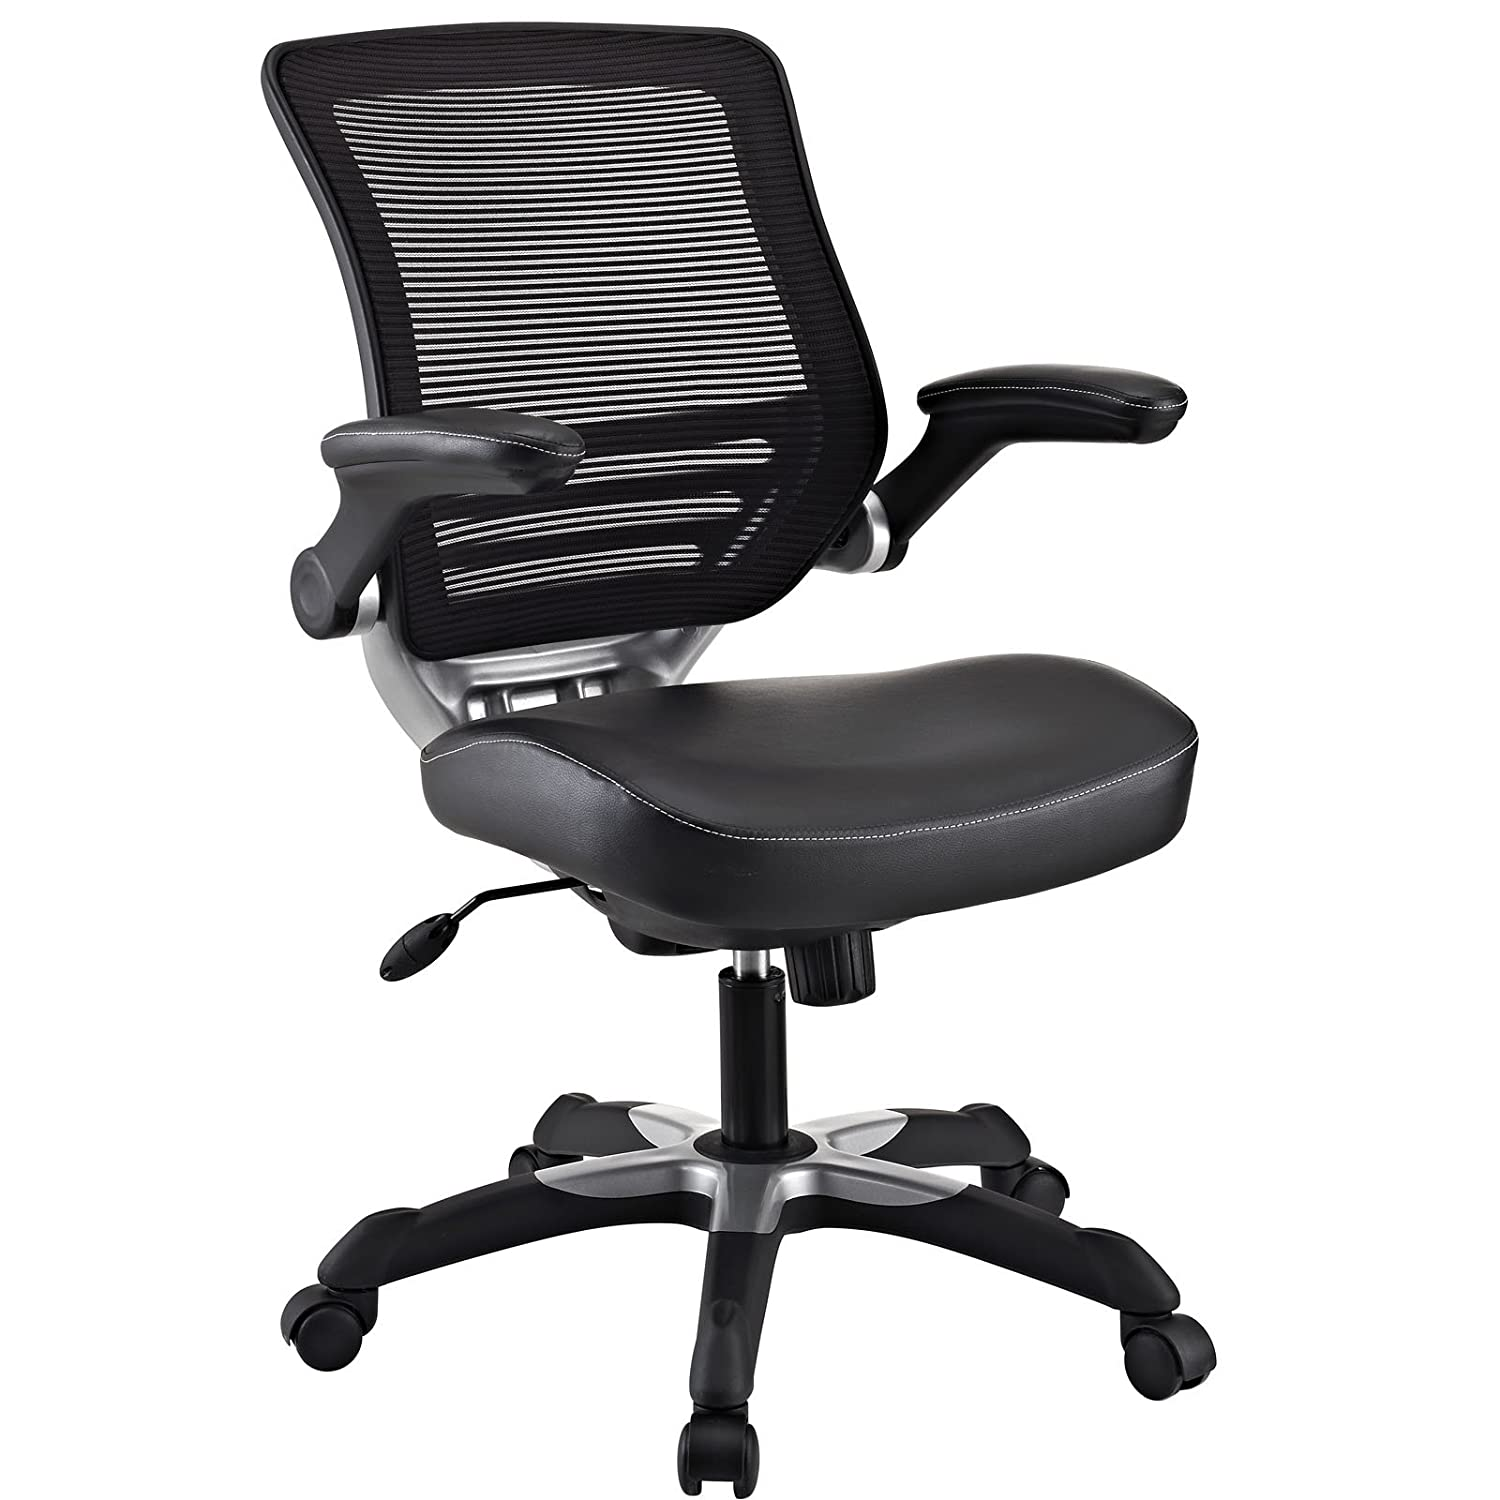 Executive Chairs Xl Office Chairs For The Executive Lifestyle Office